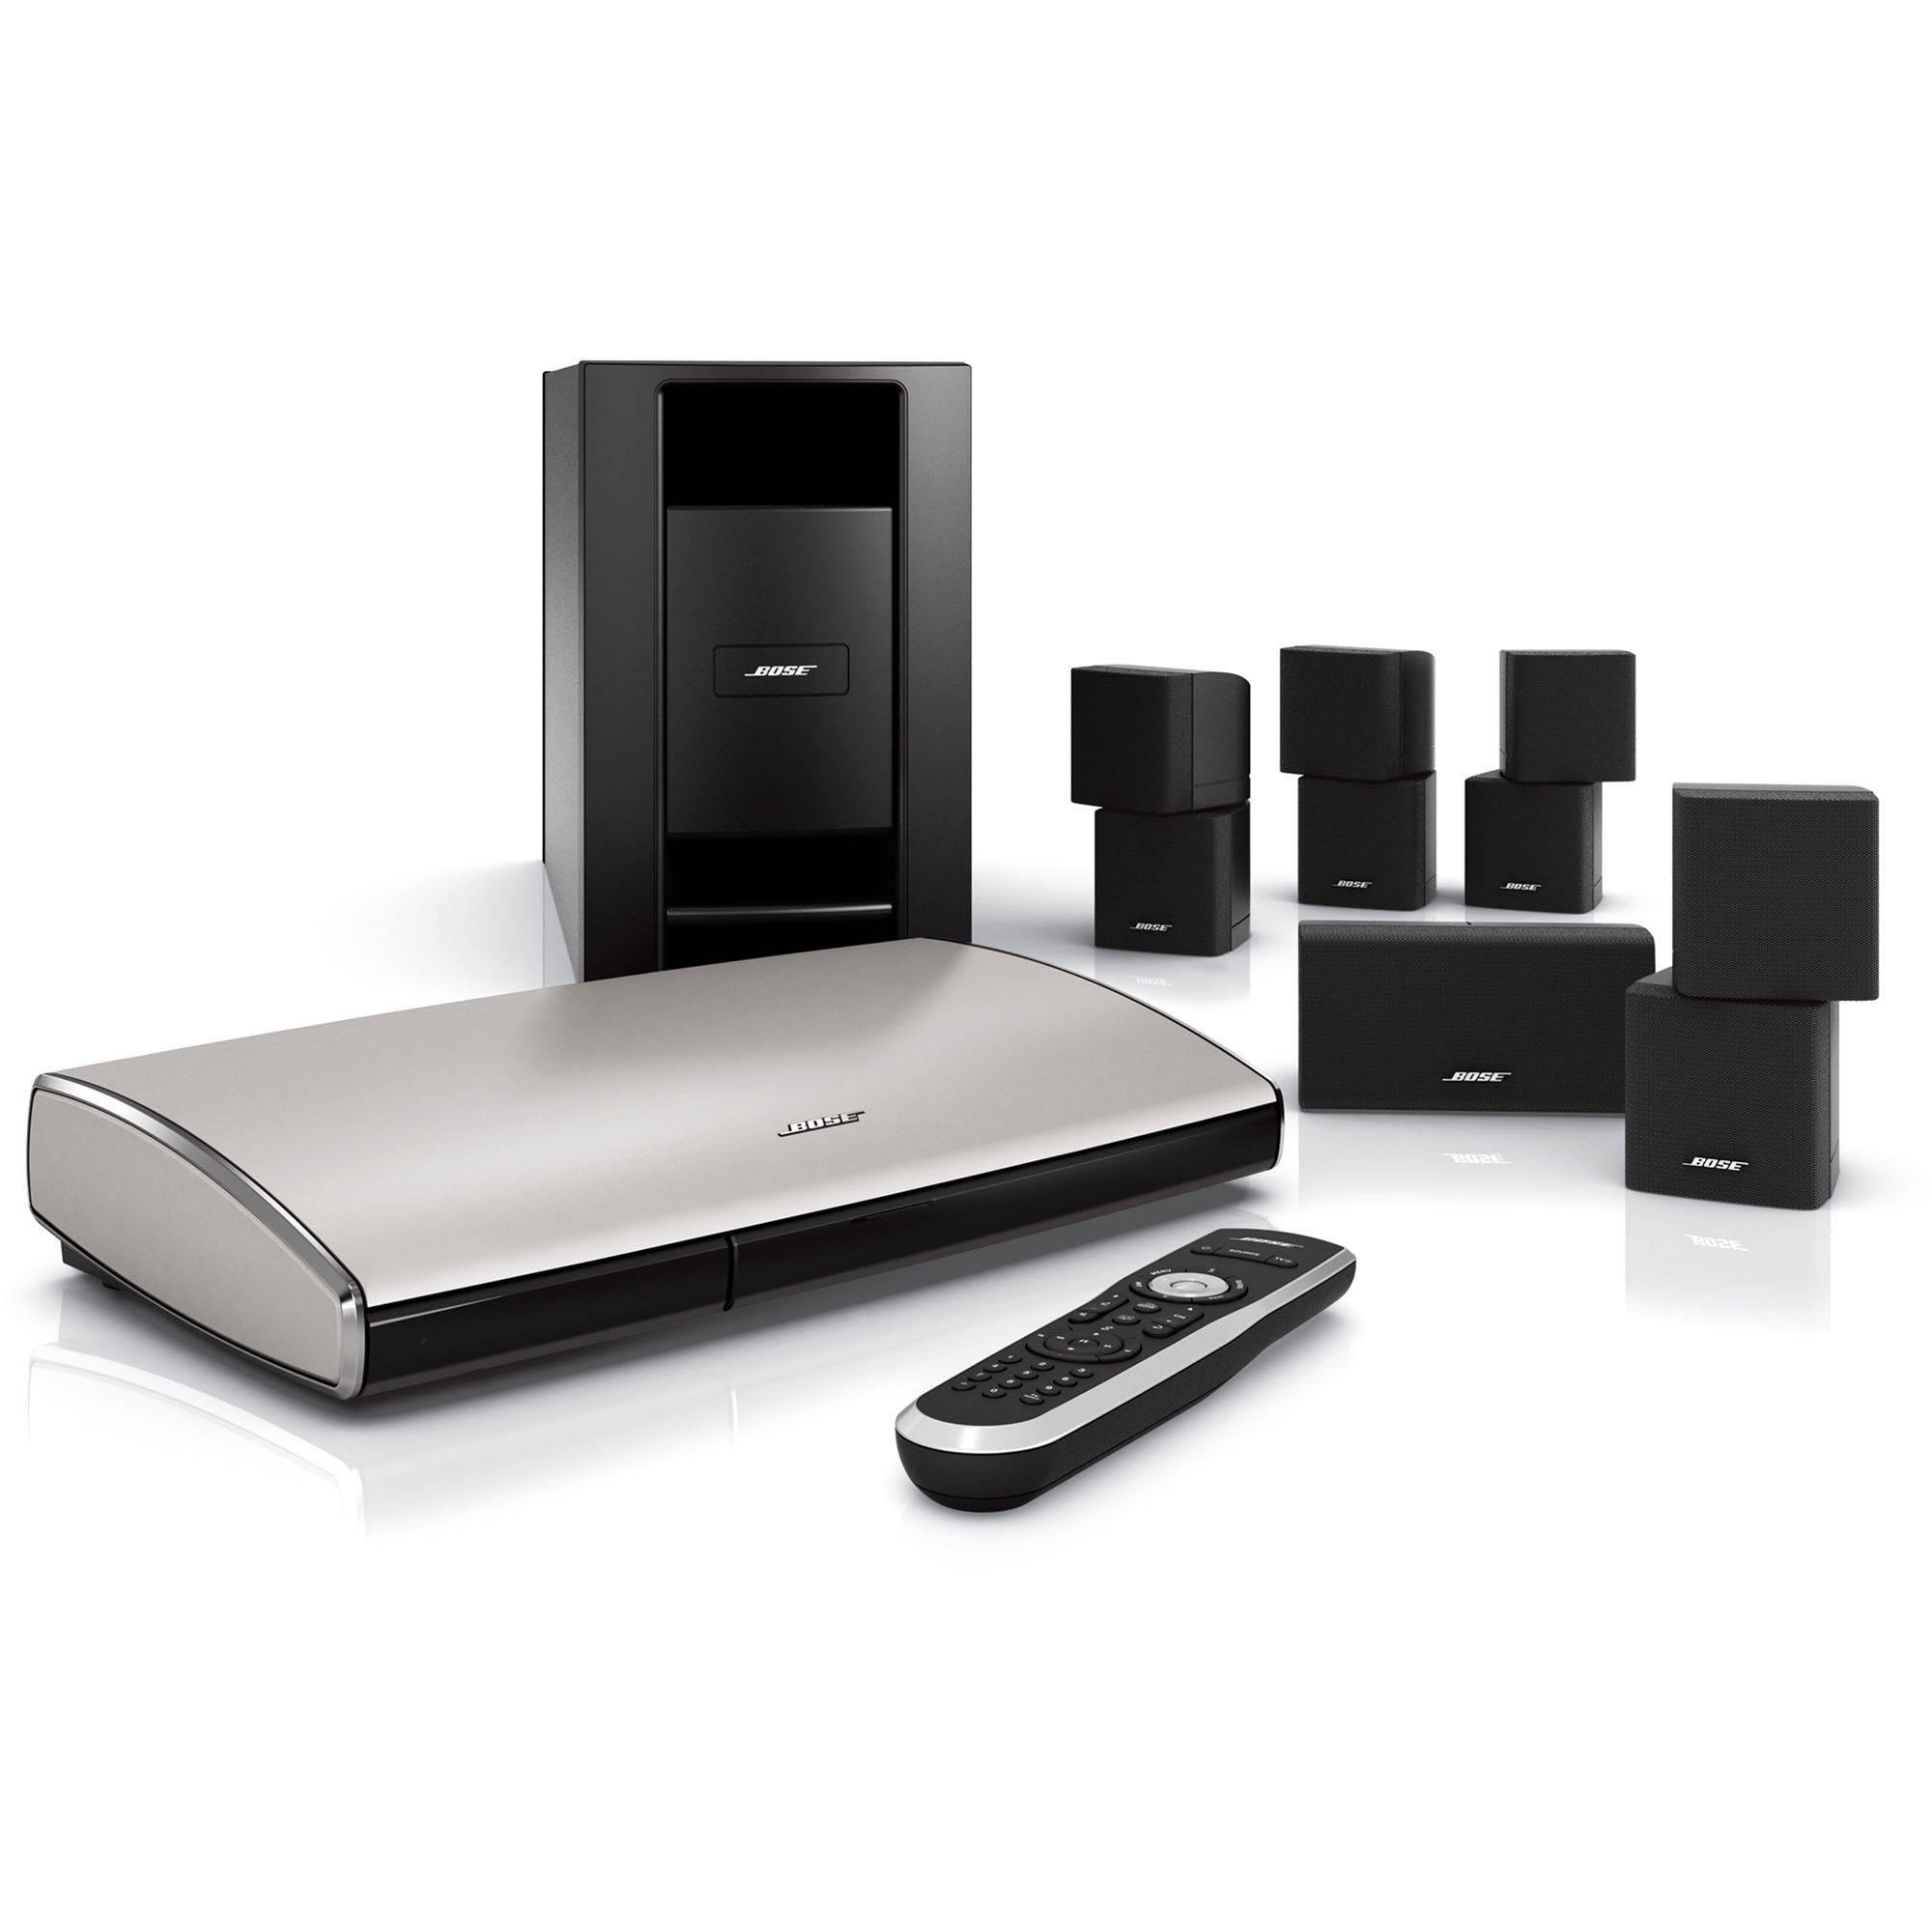 bose lifestyle t20 home theater system black 318043 1100 b h. Black Bedroom Furniture Sets. Home Design Ideas